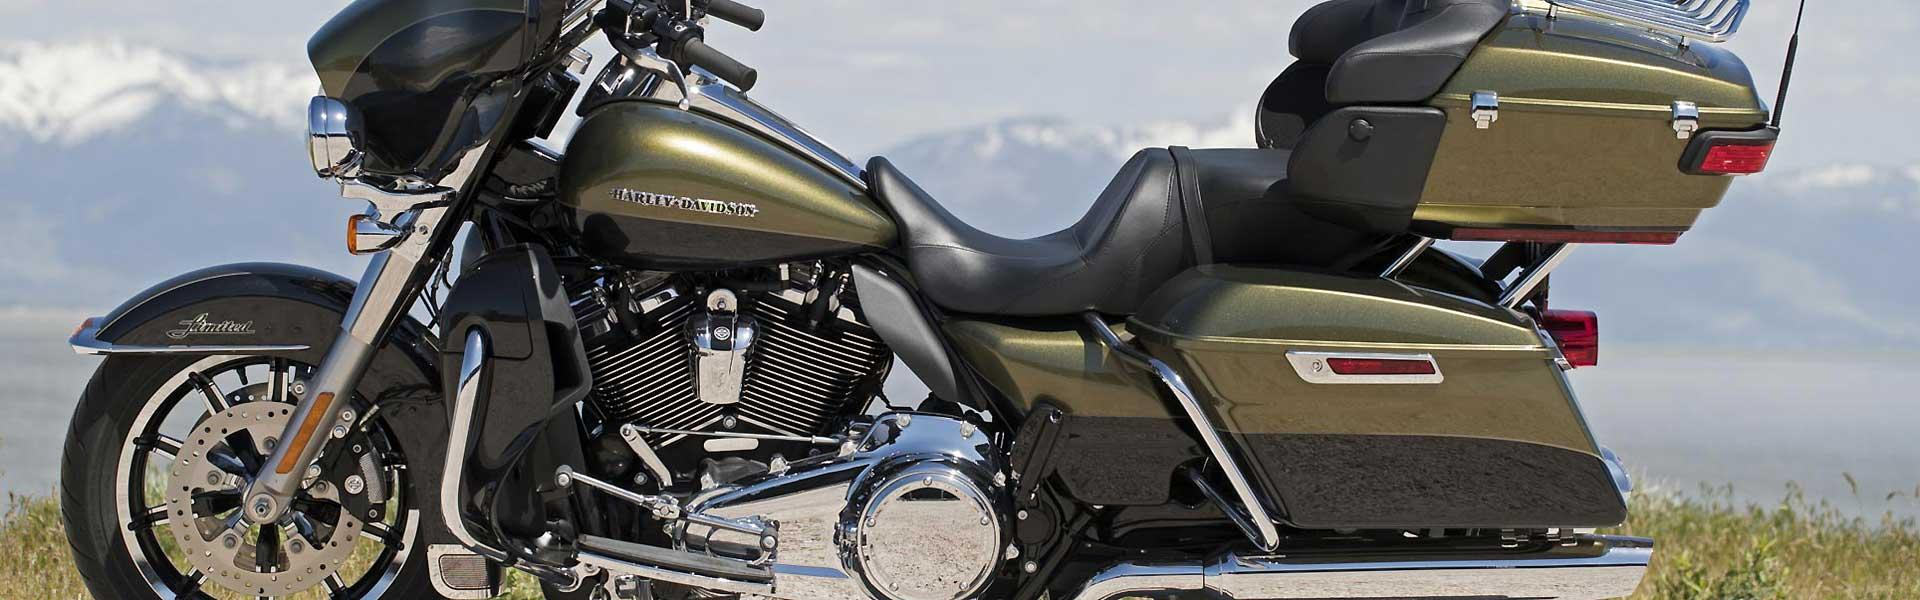 rent a harley davidson motorcycle